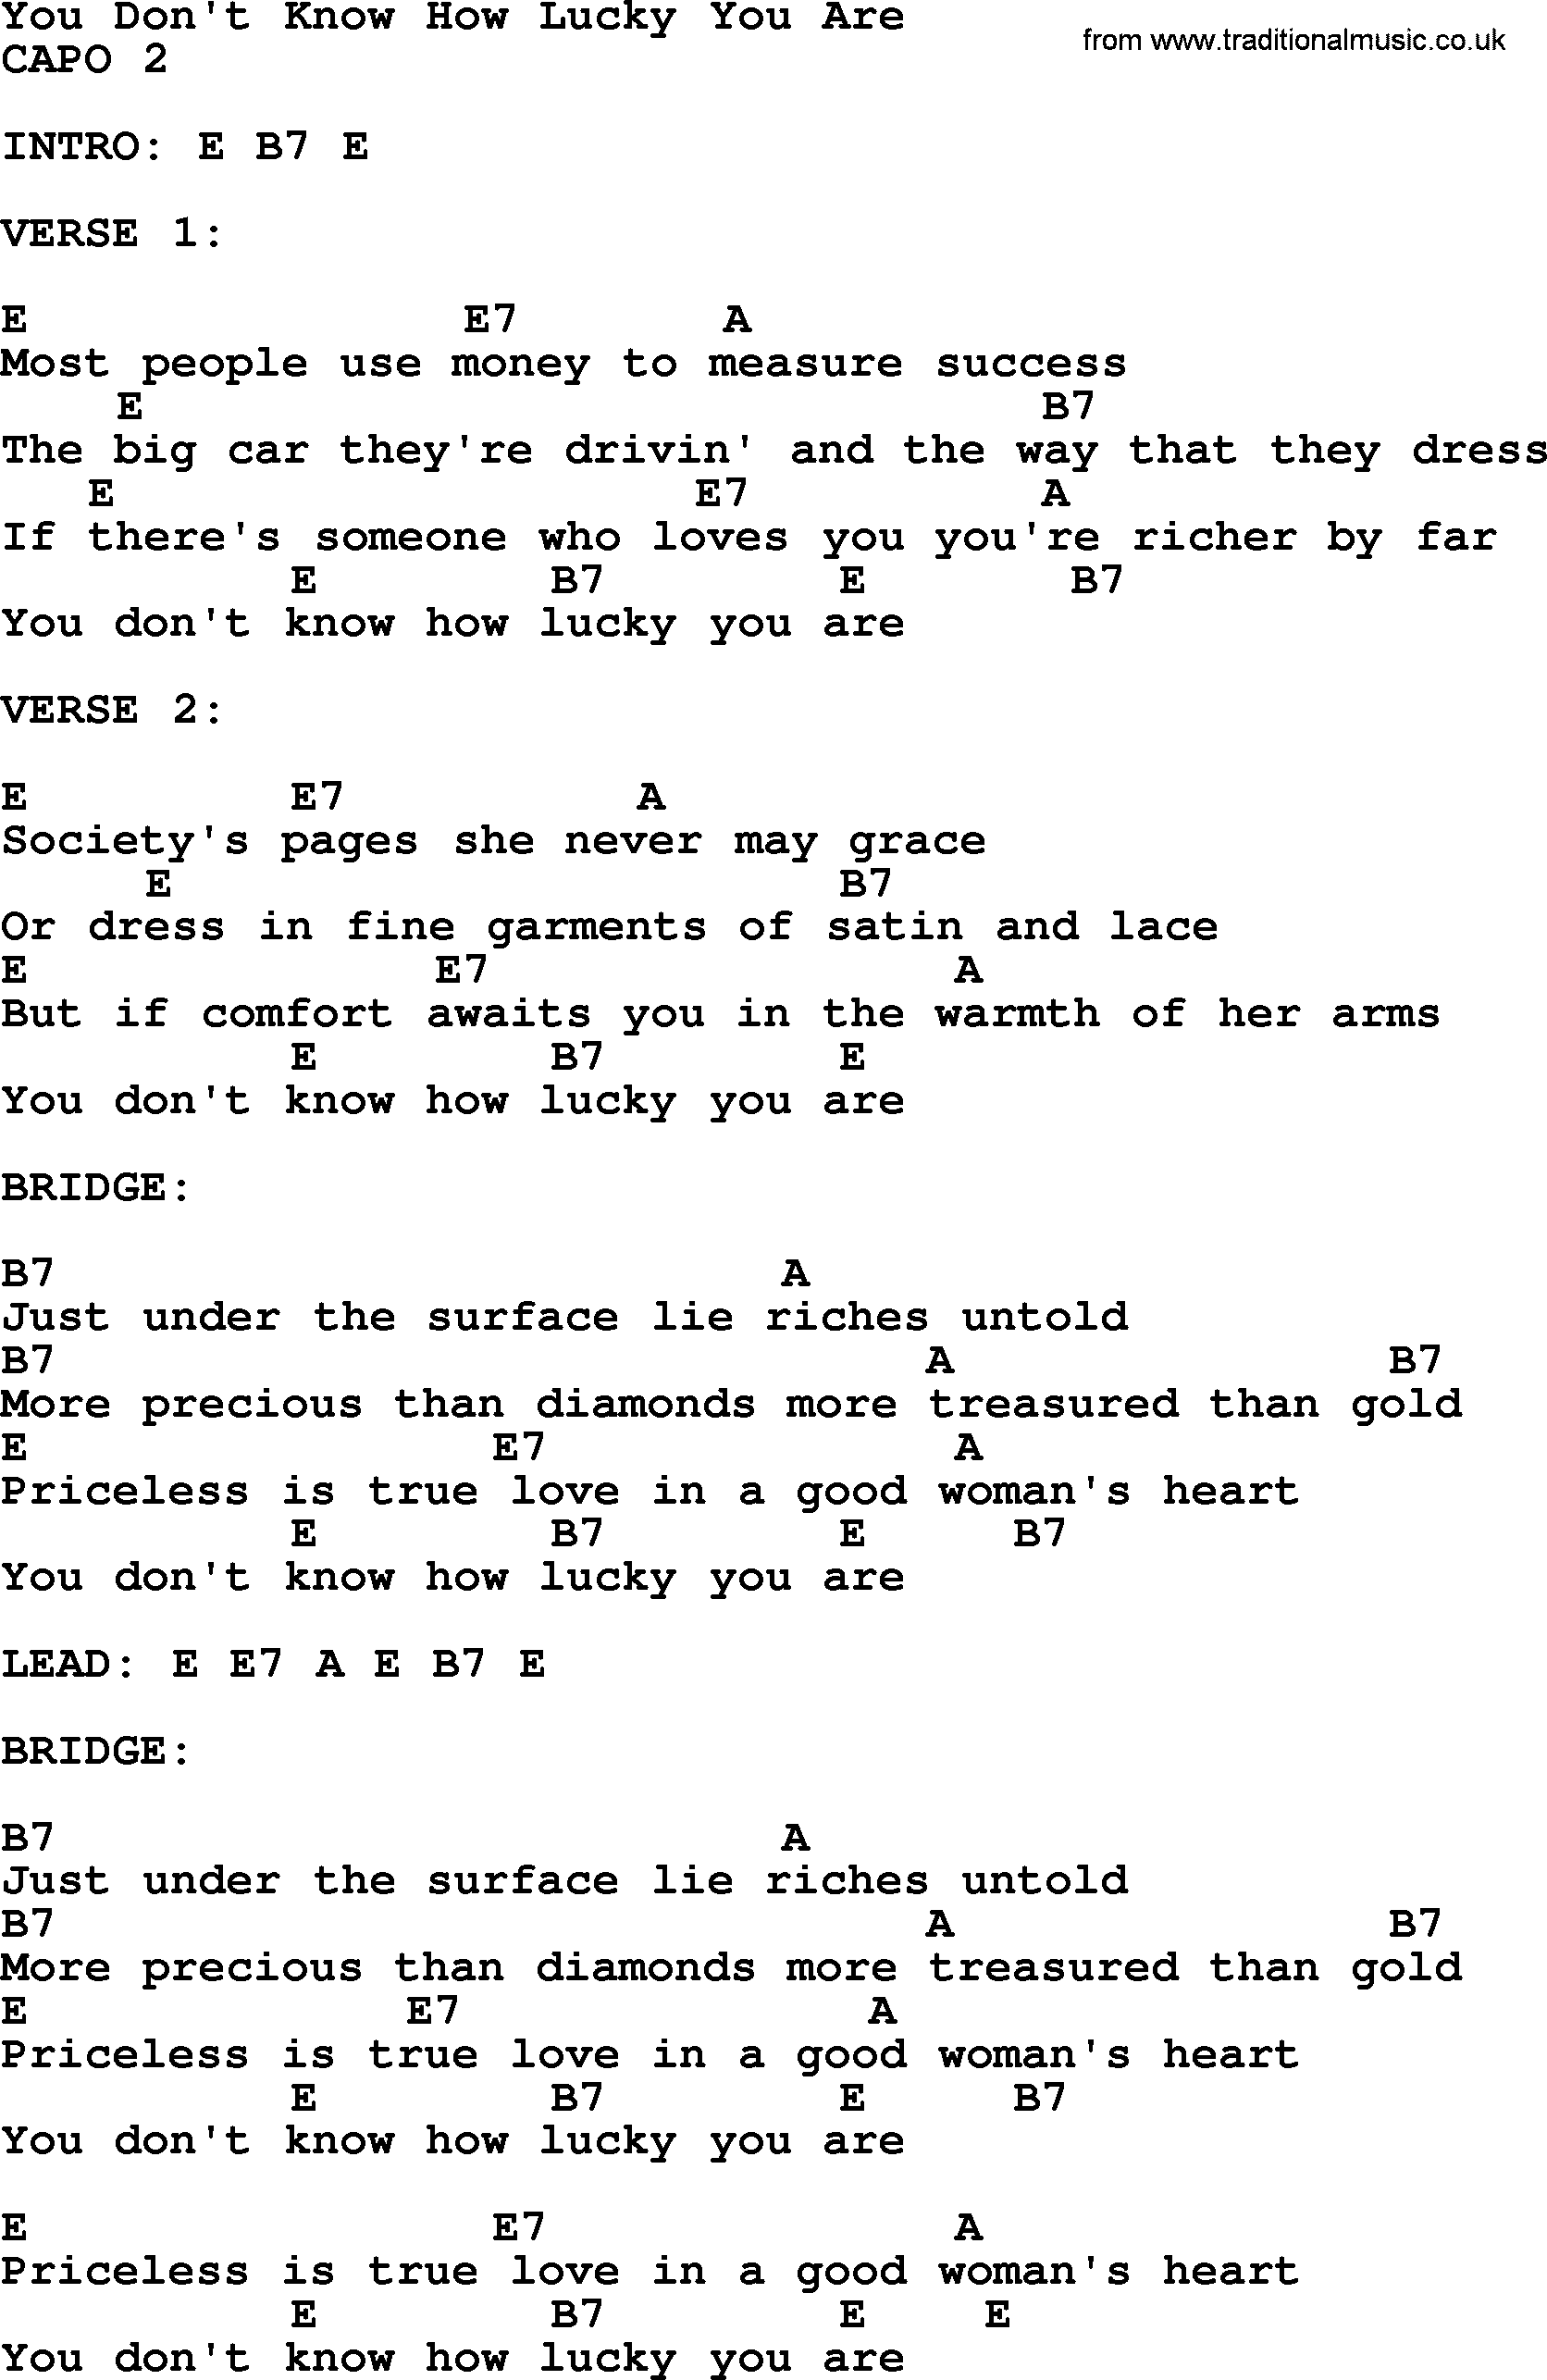 You dont know how lucky you are bluegrass lyrics with chords bluegrass song you dont know how lucky you are lyrics and chords hexwebz Image collections